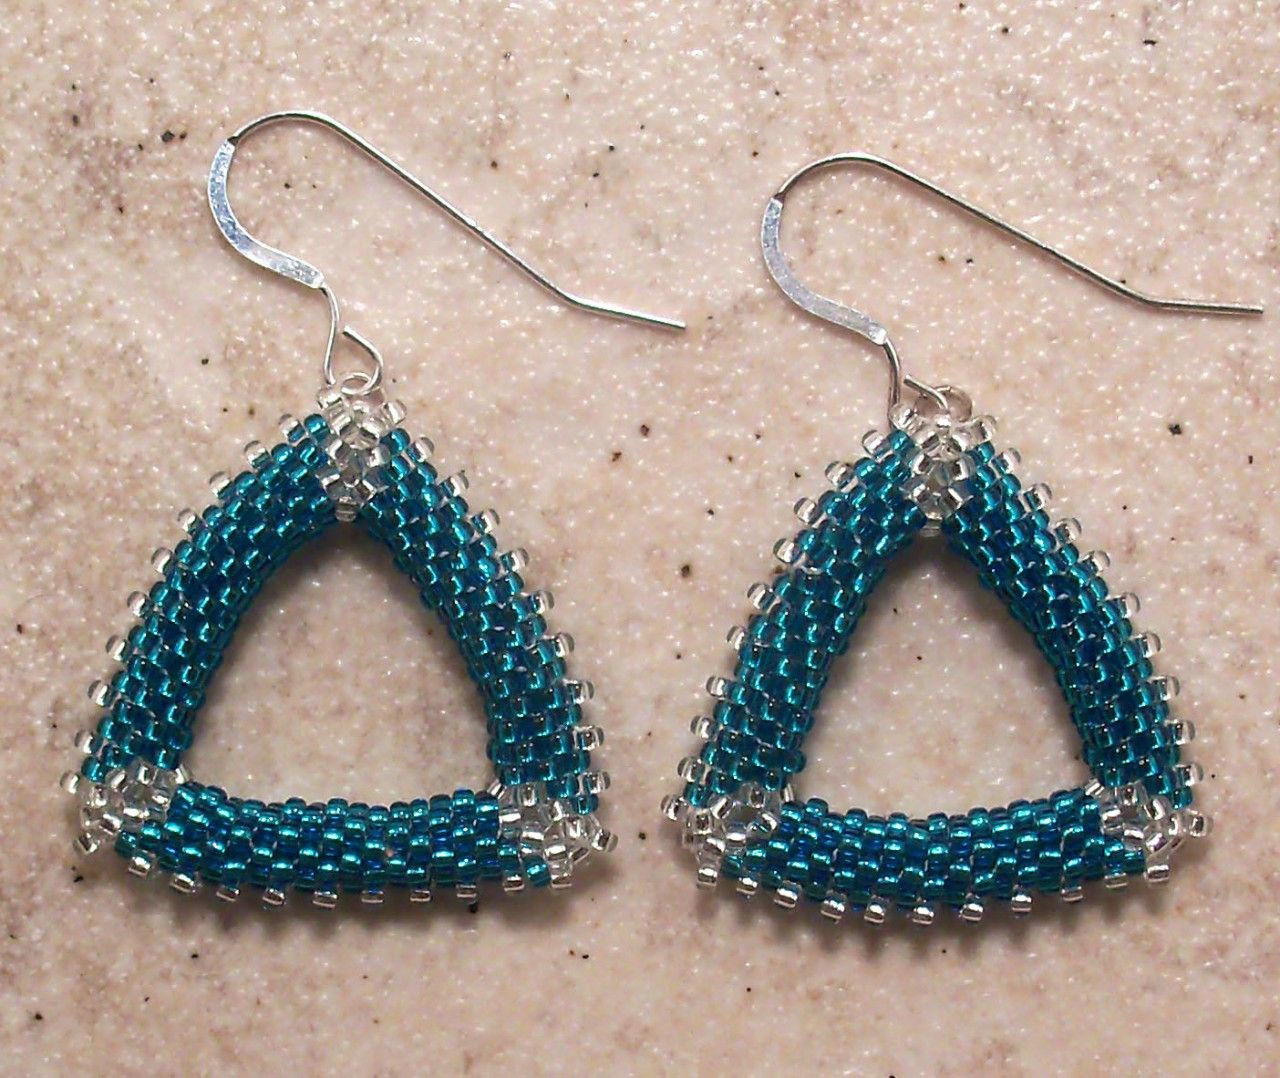 Blue and Silver Triangle Beaded Earrings Free Shipping USA on The CraftStar